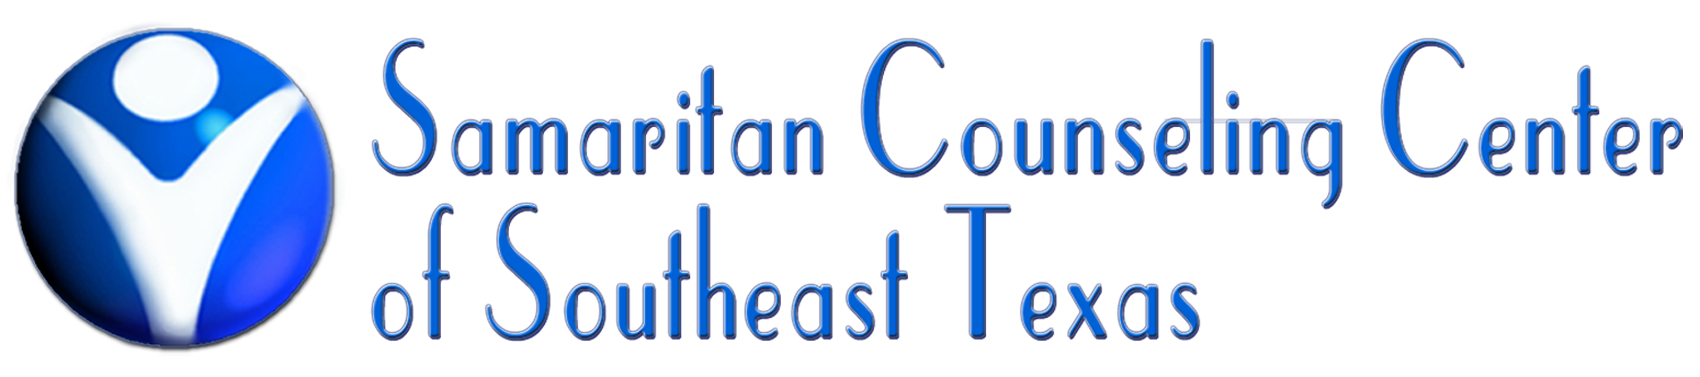 Samaritan Counseling Center of Southeast Texas Logo